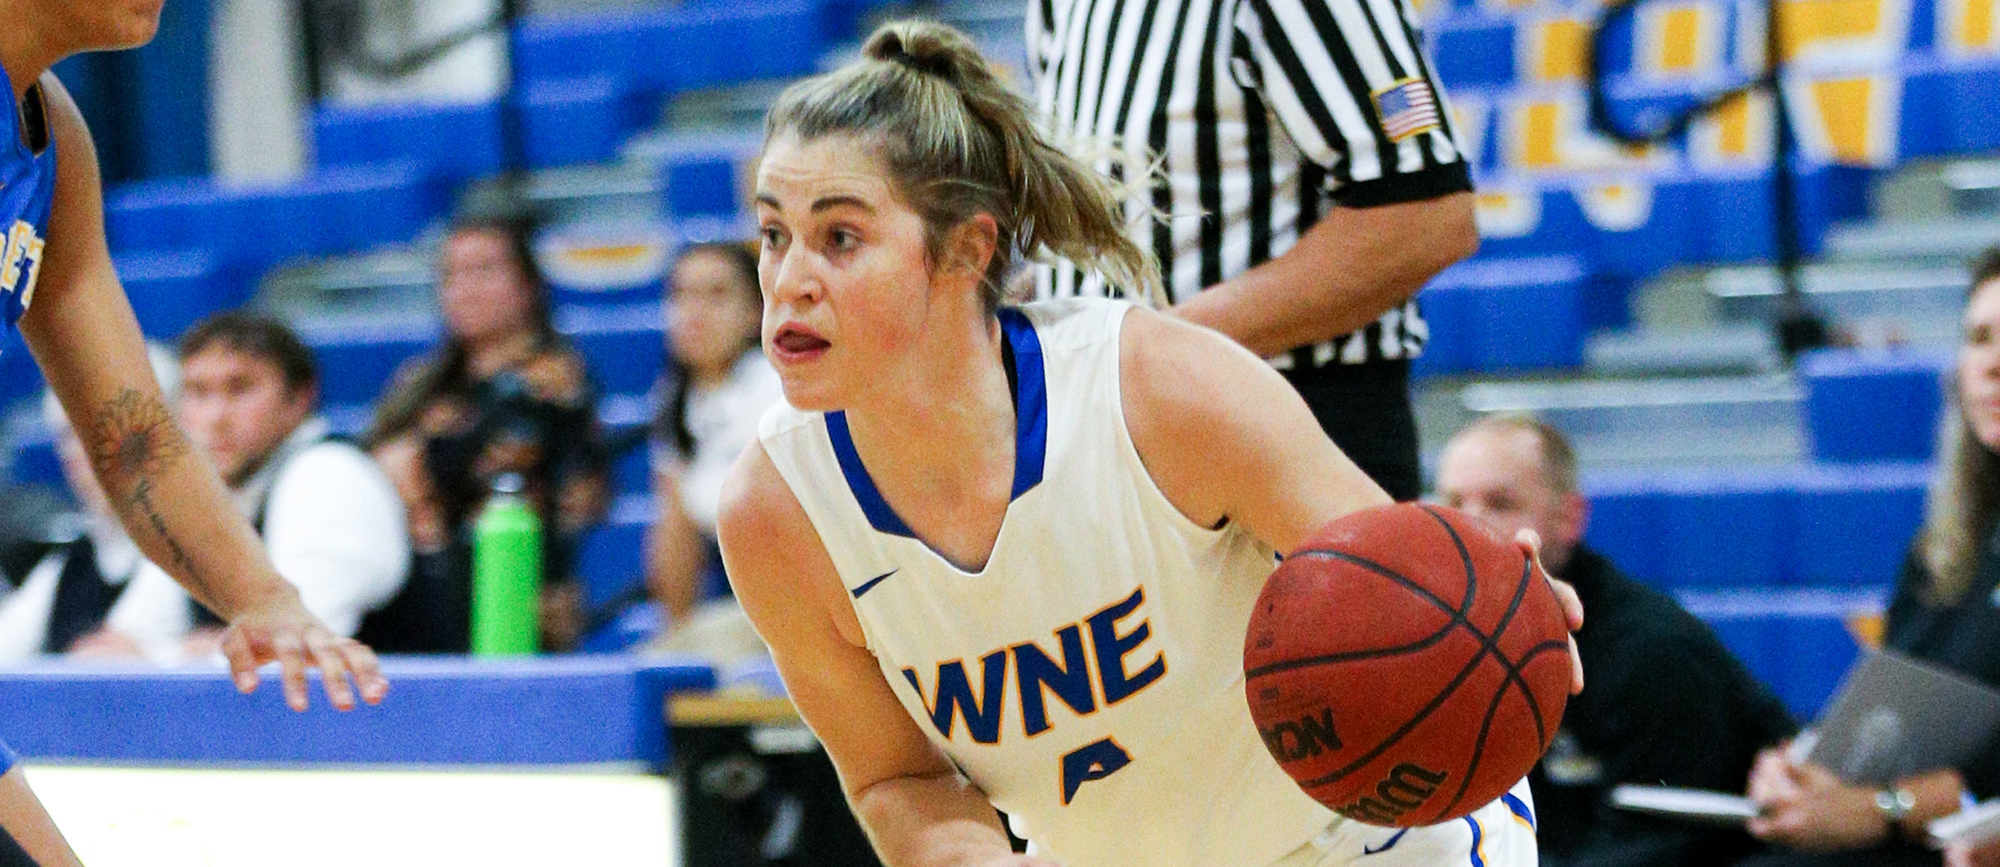 Lauren Chadwick scored ten points in Western New England's 56-47 loss to Endicott on Saturday. (Photo by Chris Marion)